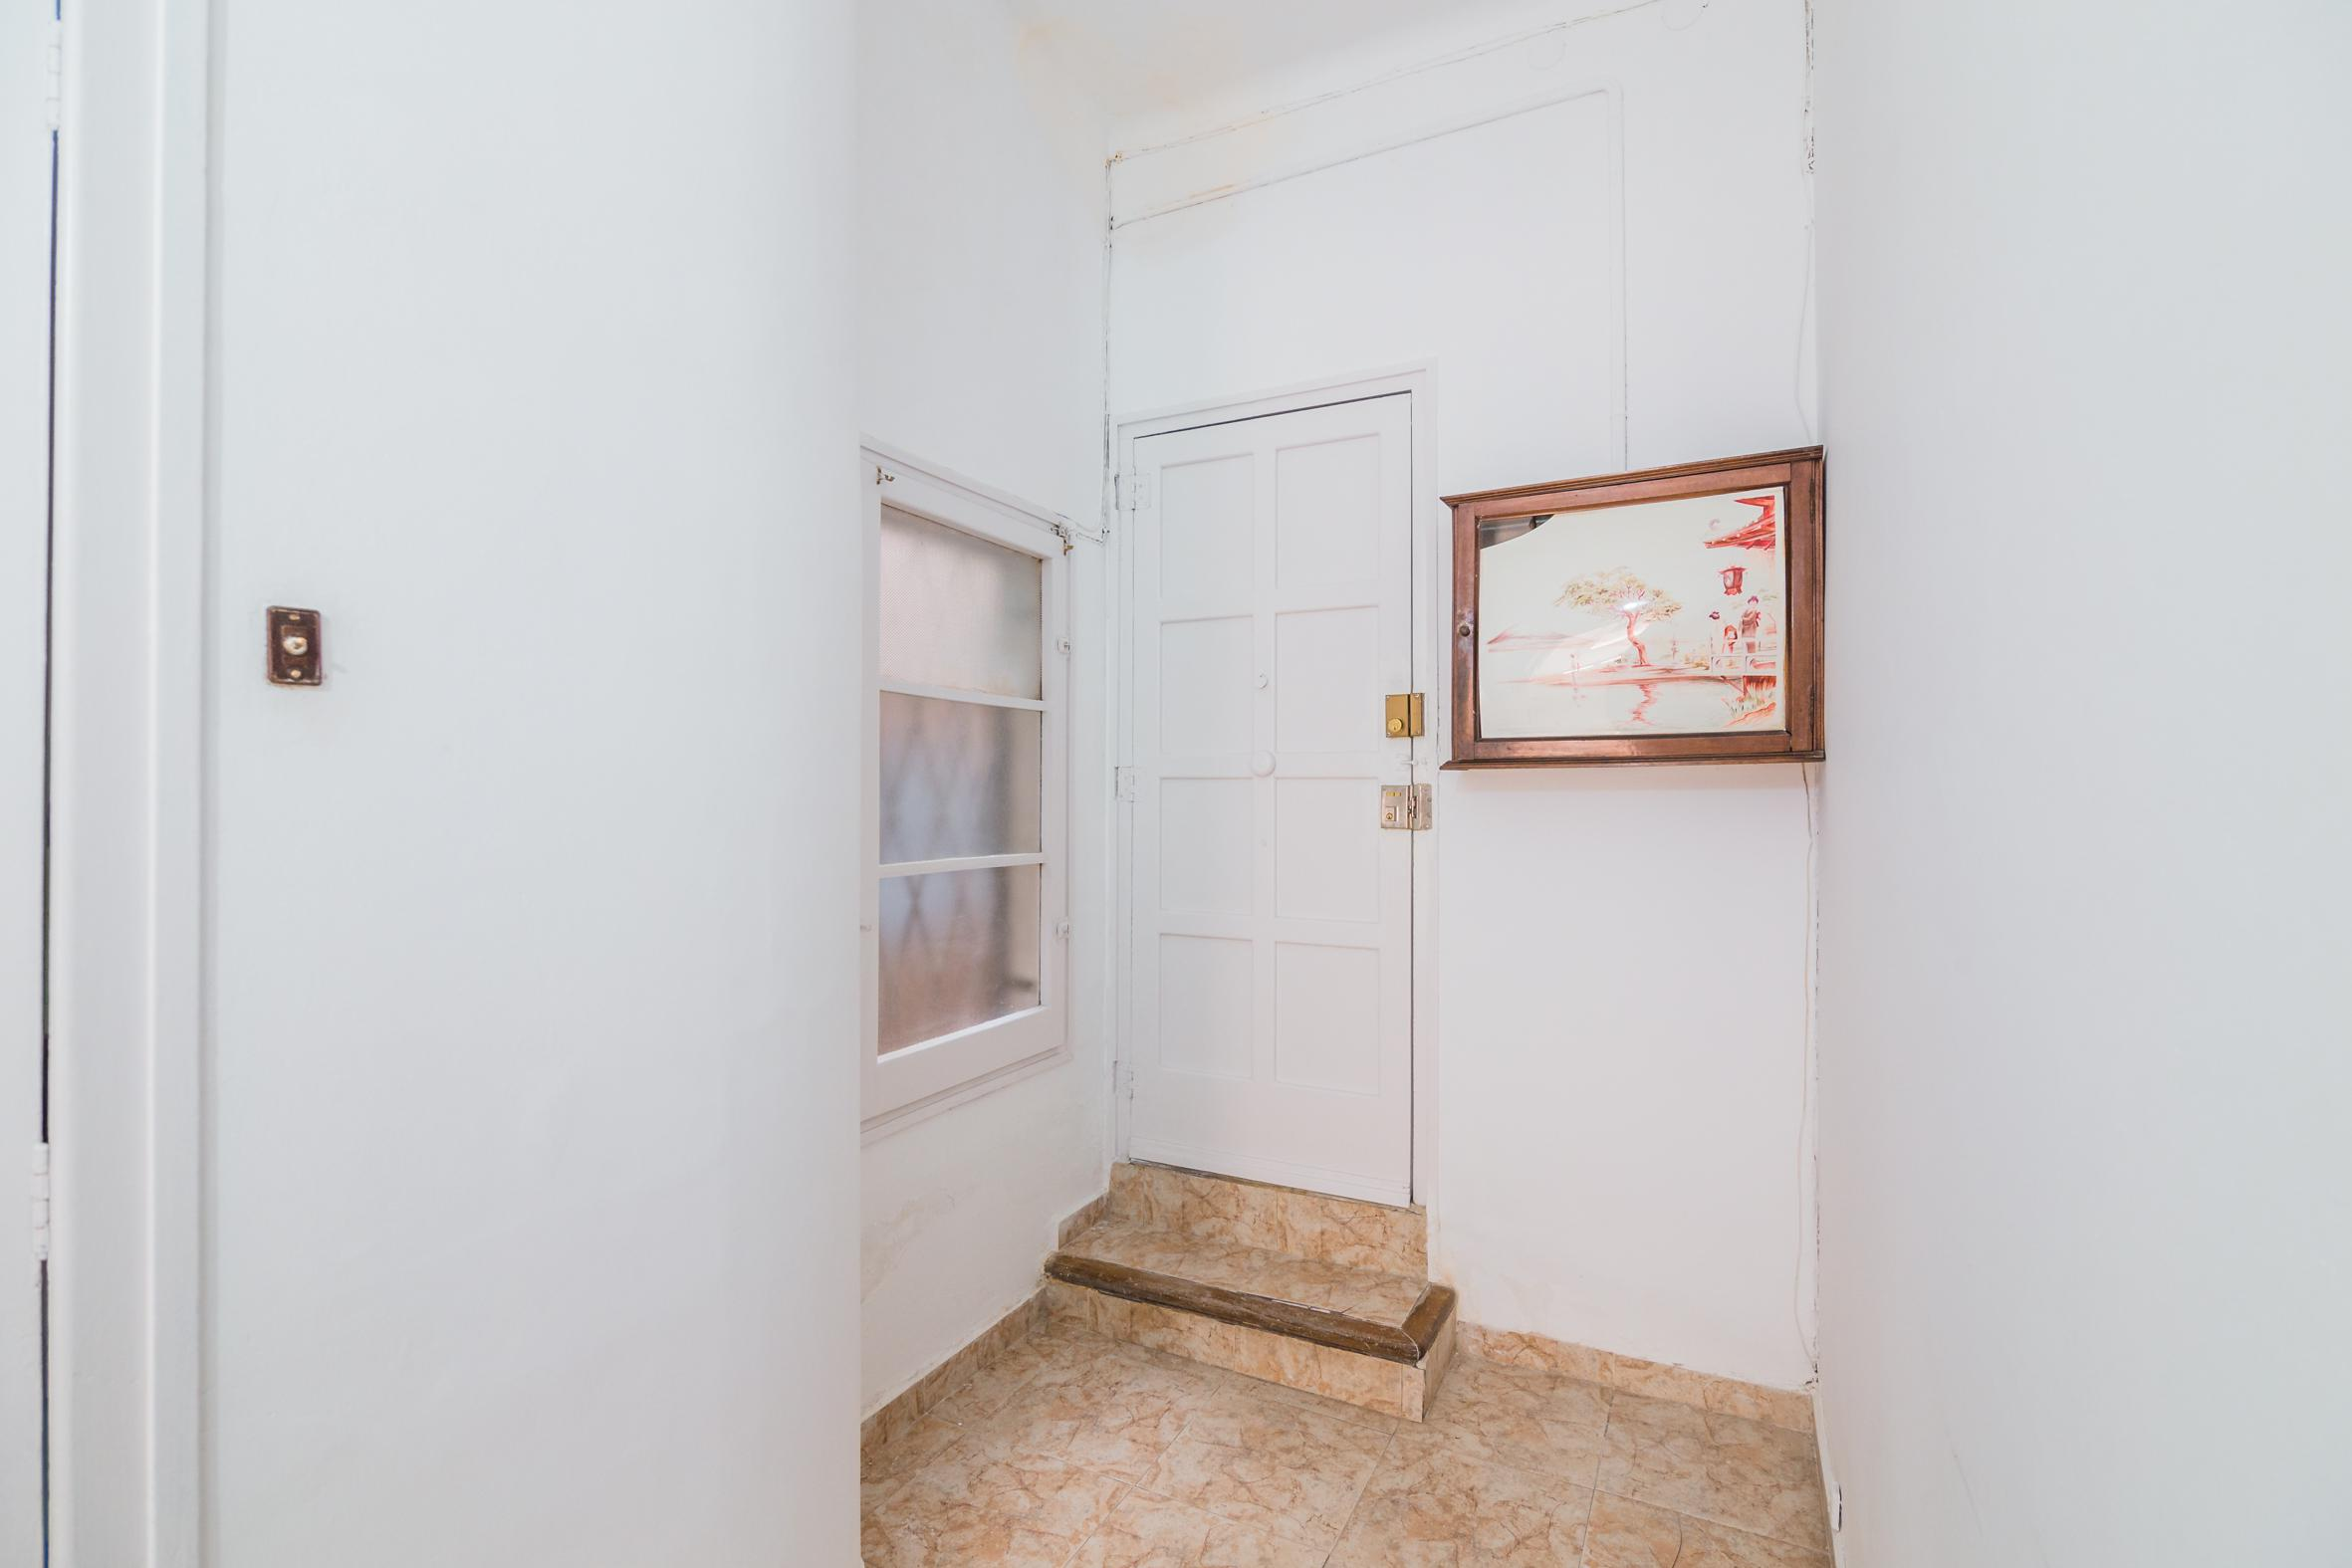 205188 Apartment for sale in Sarrià-Sant Gervasi, St. Gervasi-Bonanova 16